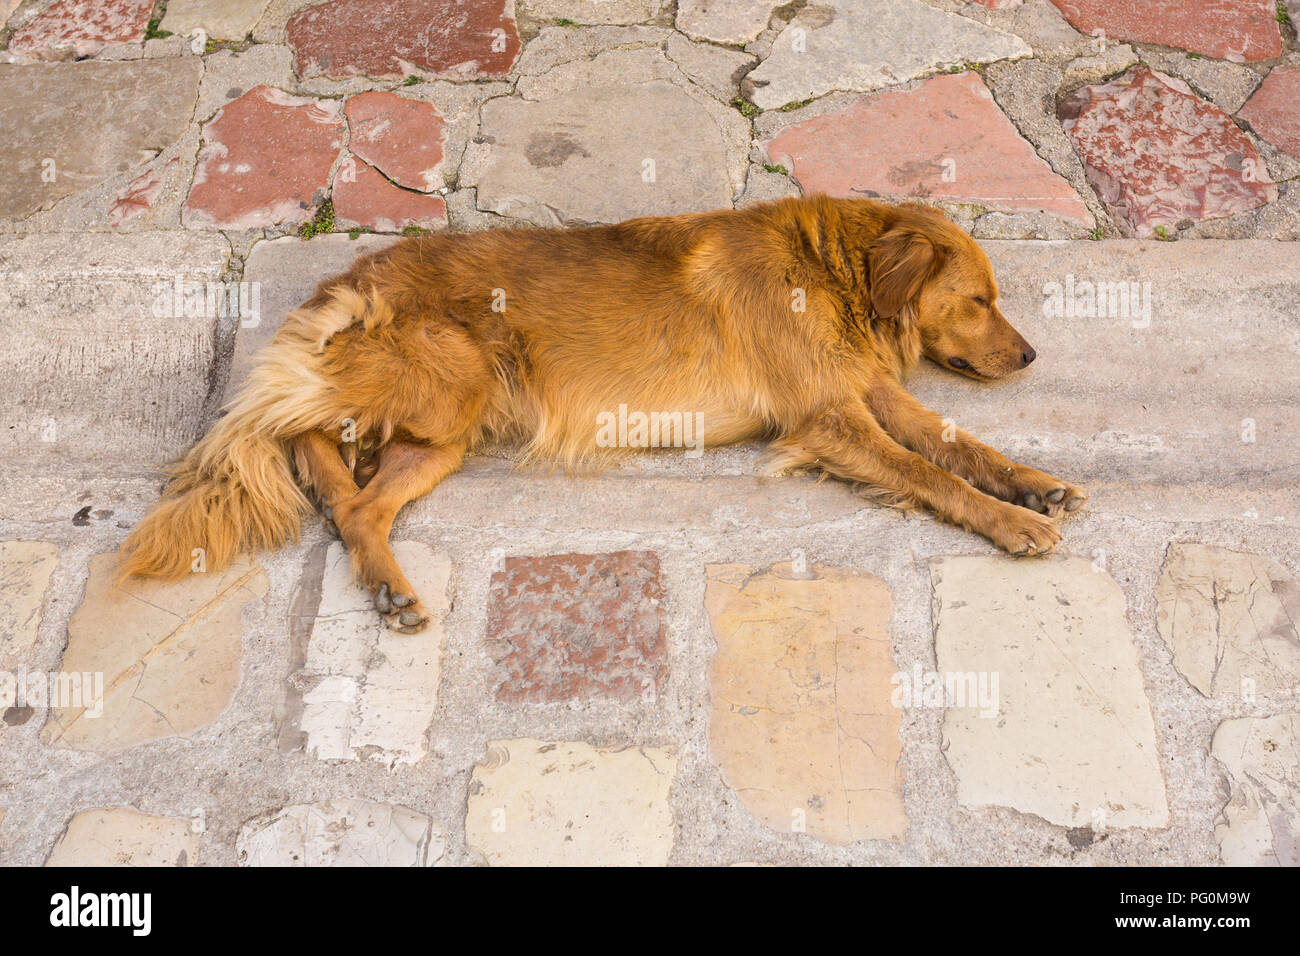 Golden brown coloured fur lazy pet canine dog laying down and sleeping / resting in gutter of stone slab paved street on hot day at Kotor. Montenegro. - Stock Image